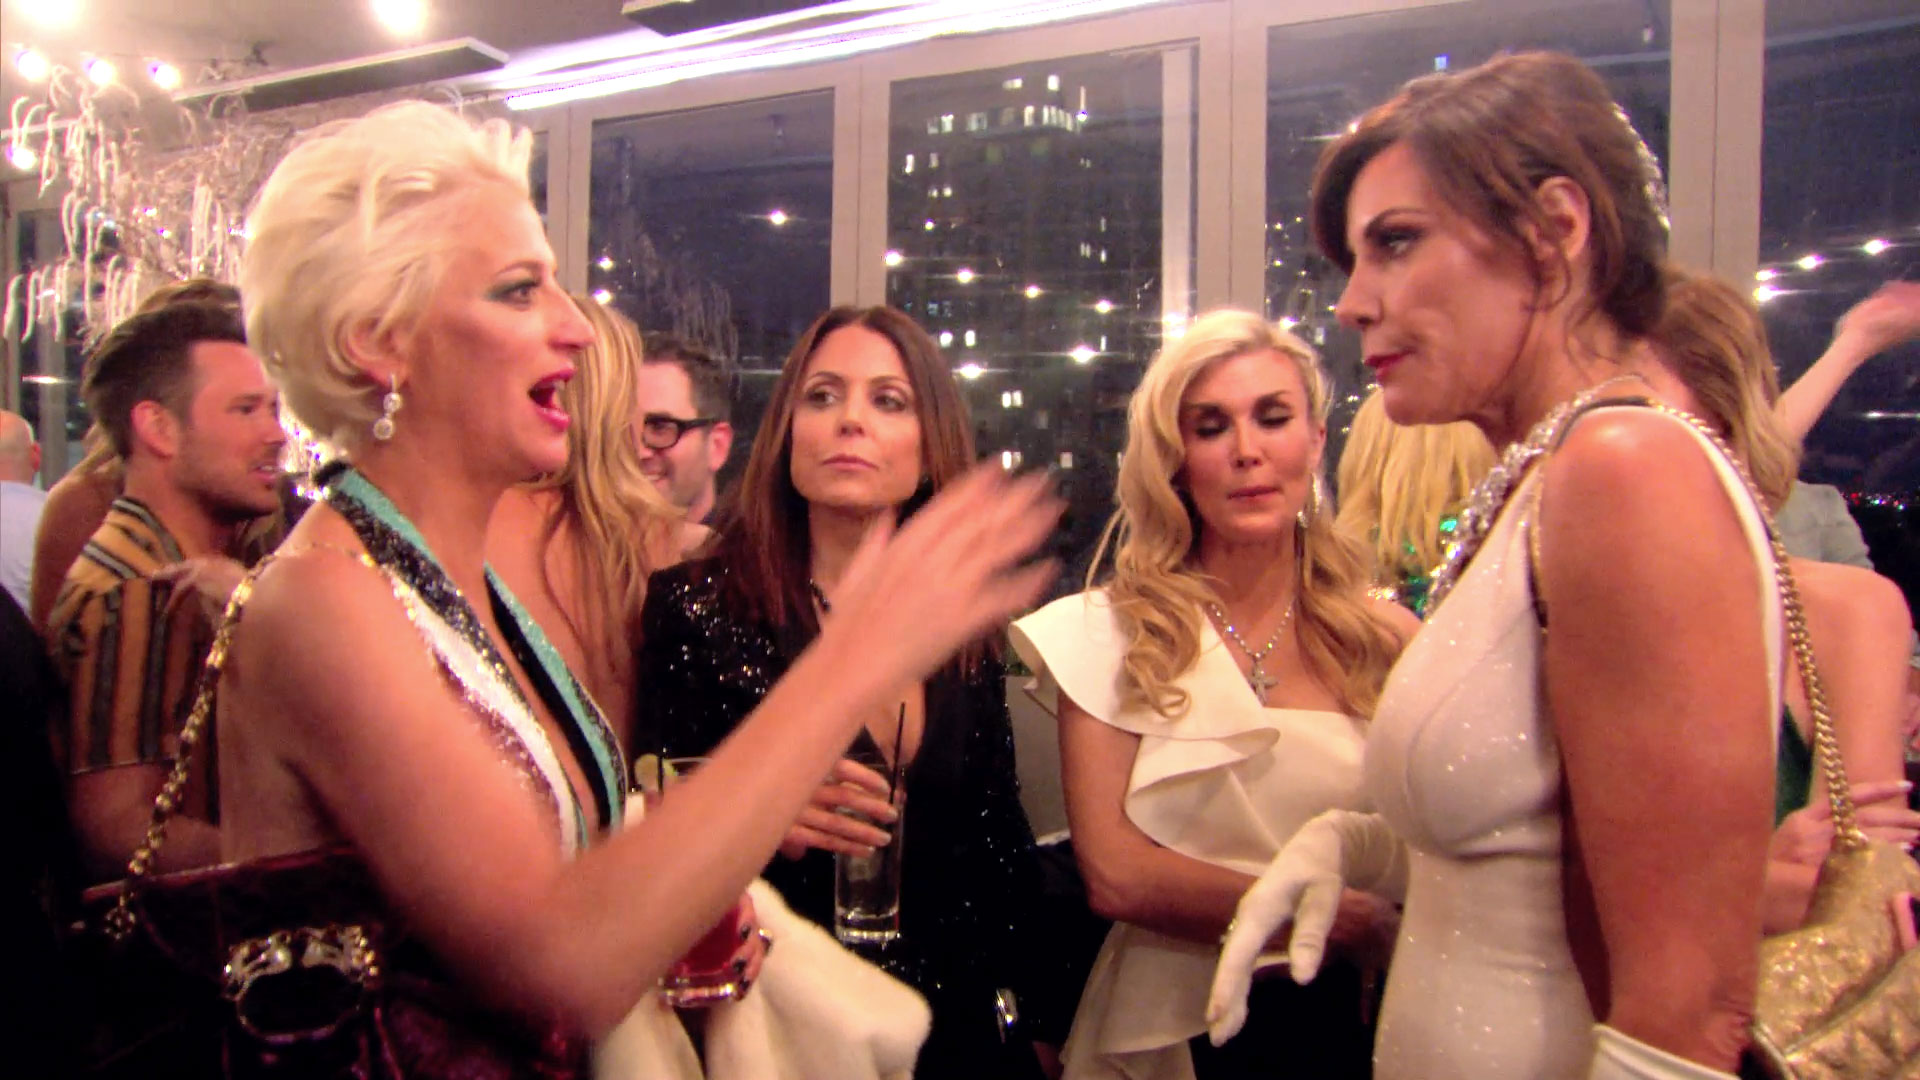 Luann de Lesseps Isn't Letting Anyone Ruin Her Night